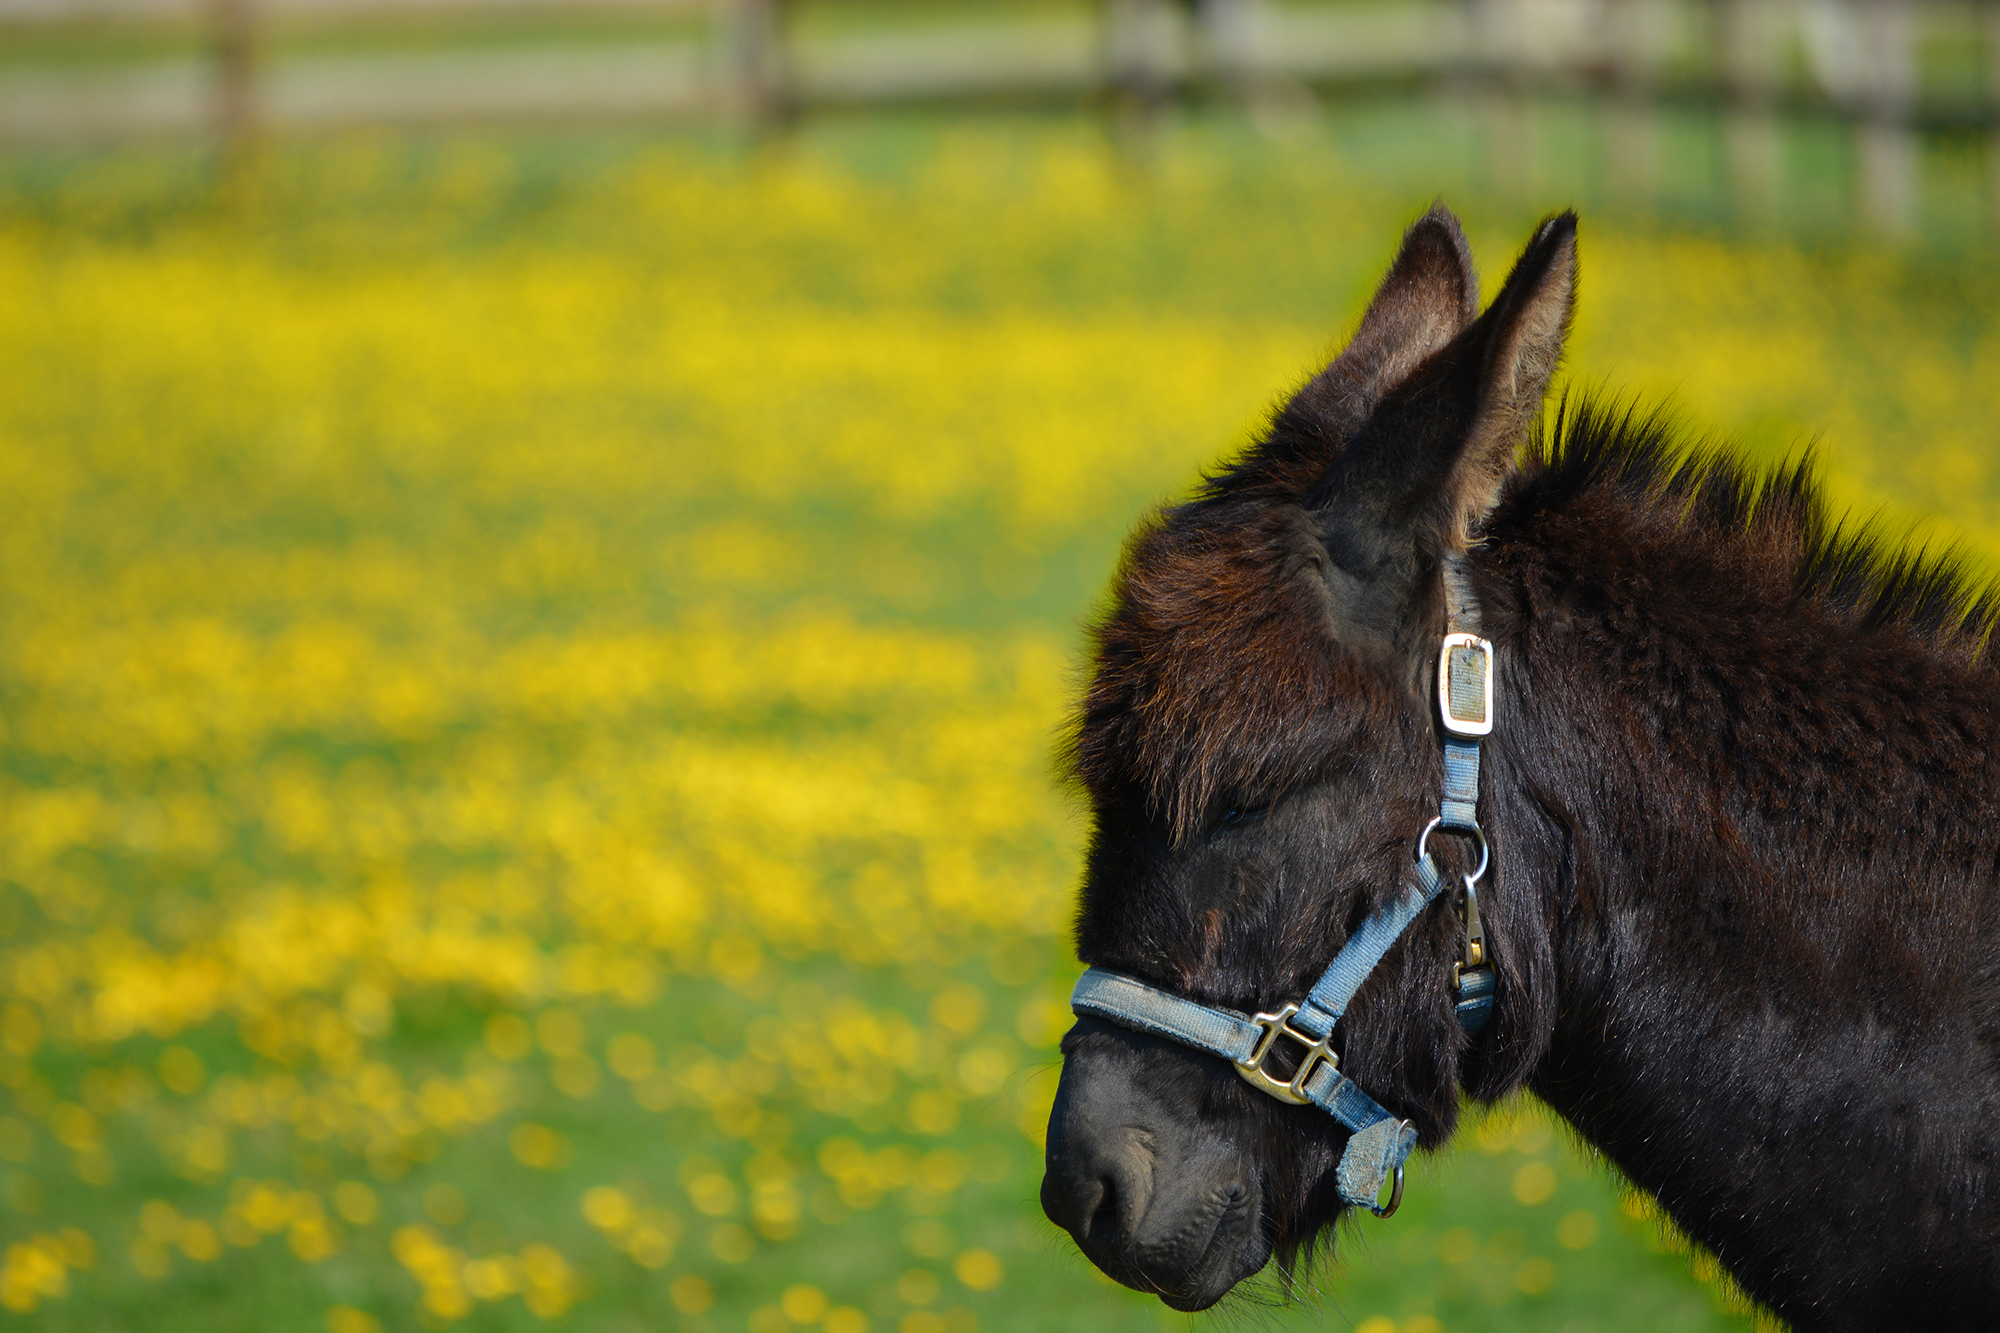 Cheeky Donkey in a Buttercup Meadow